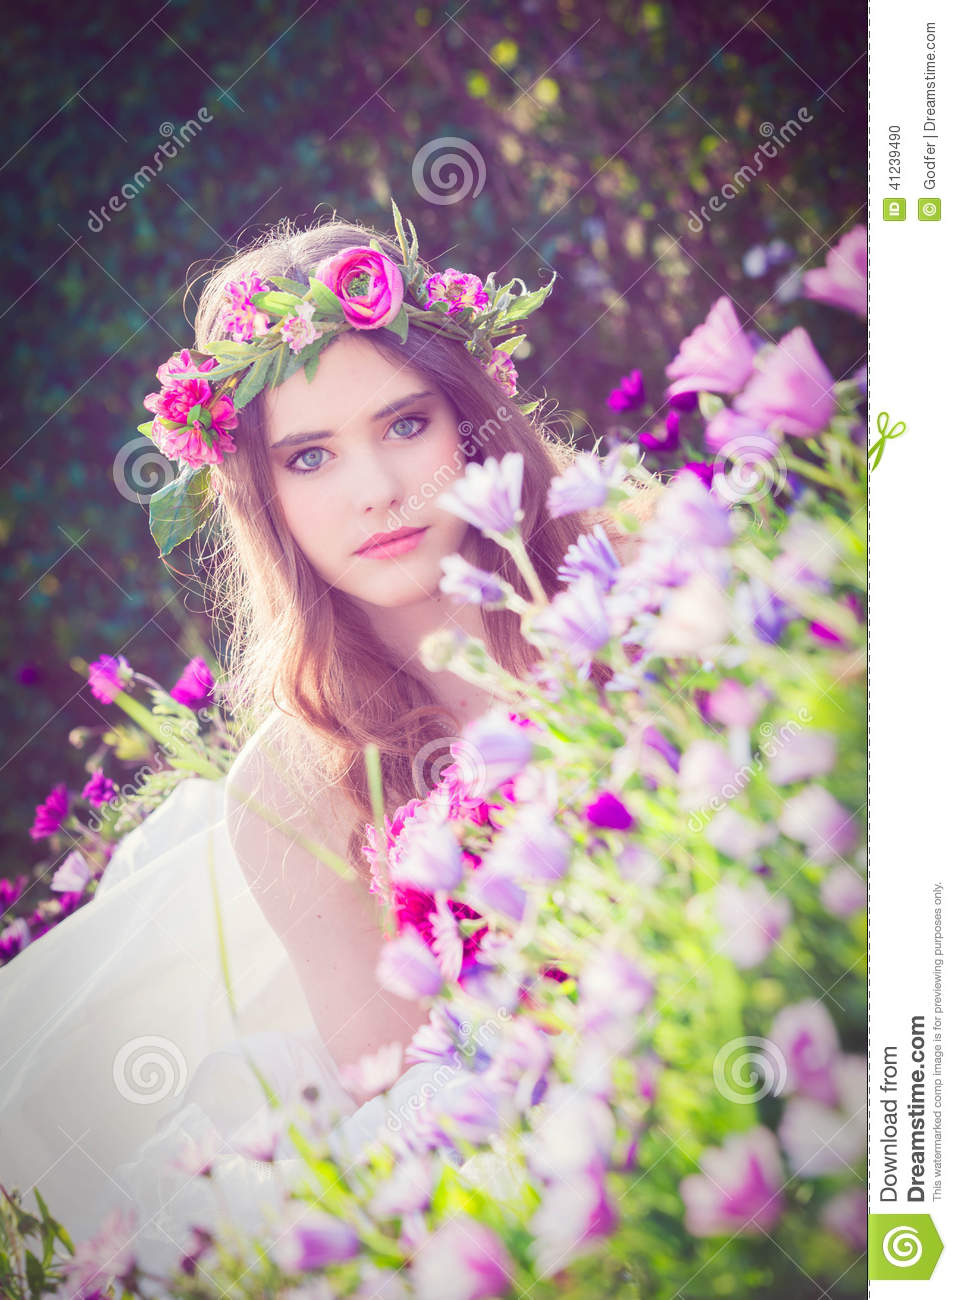 Natural Beauty Flower Fairy Stock Photo Image 41239490